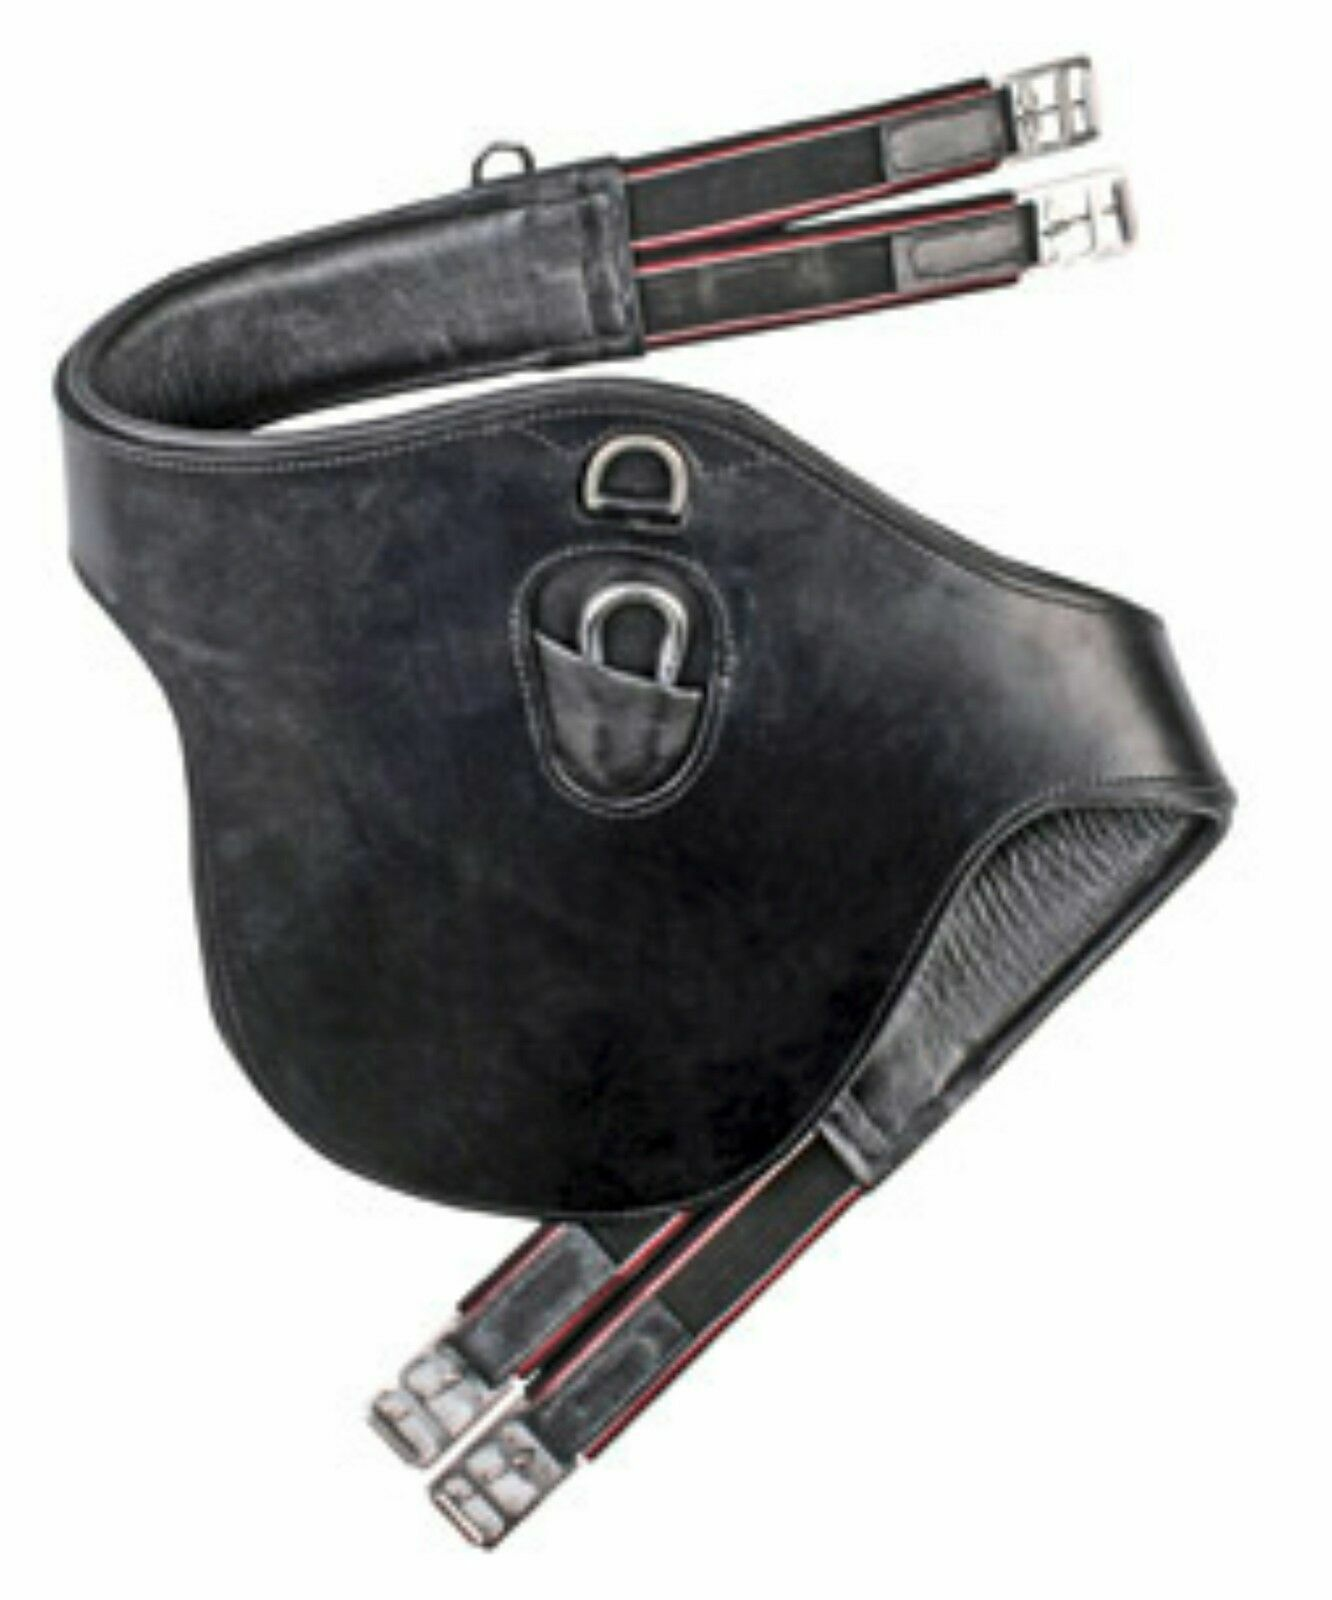 Hkm girth with prougeection strip cleat